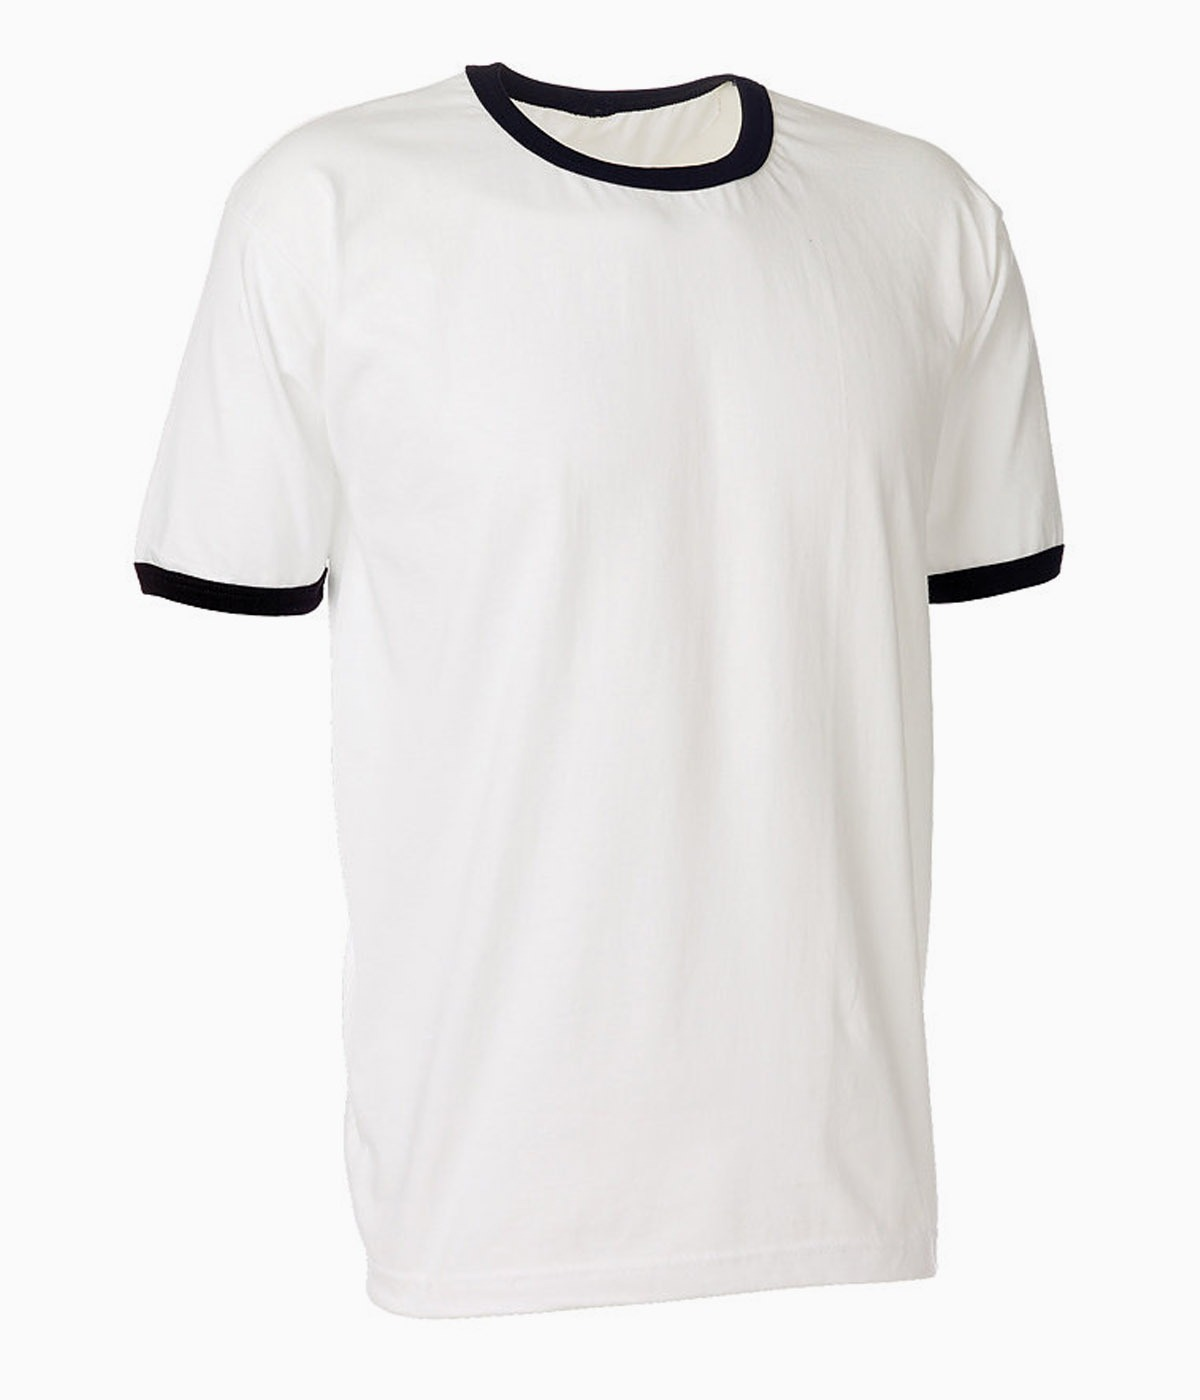 Wholesale T Shirts Toptee Private Label Blank Tee Shirts